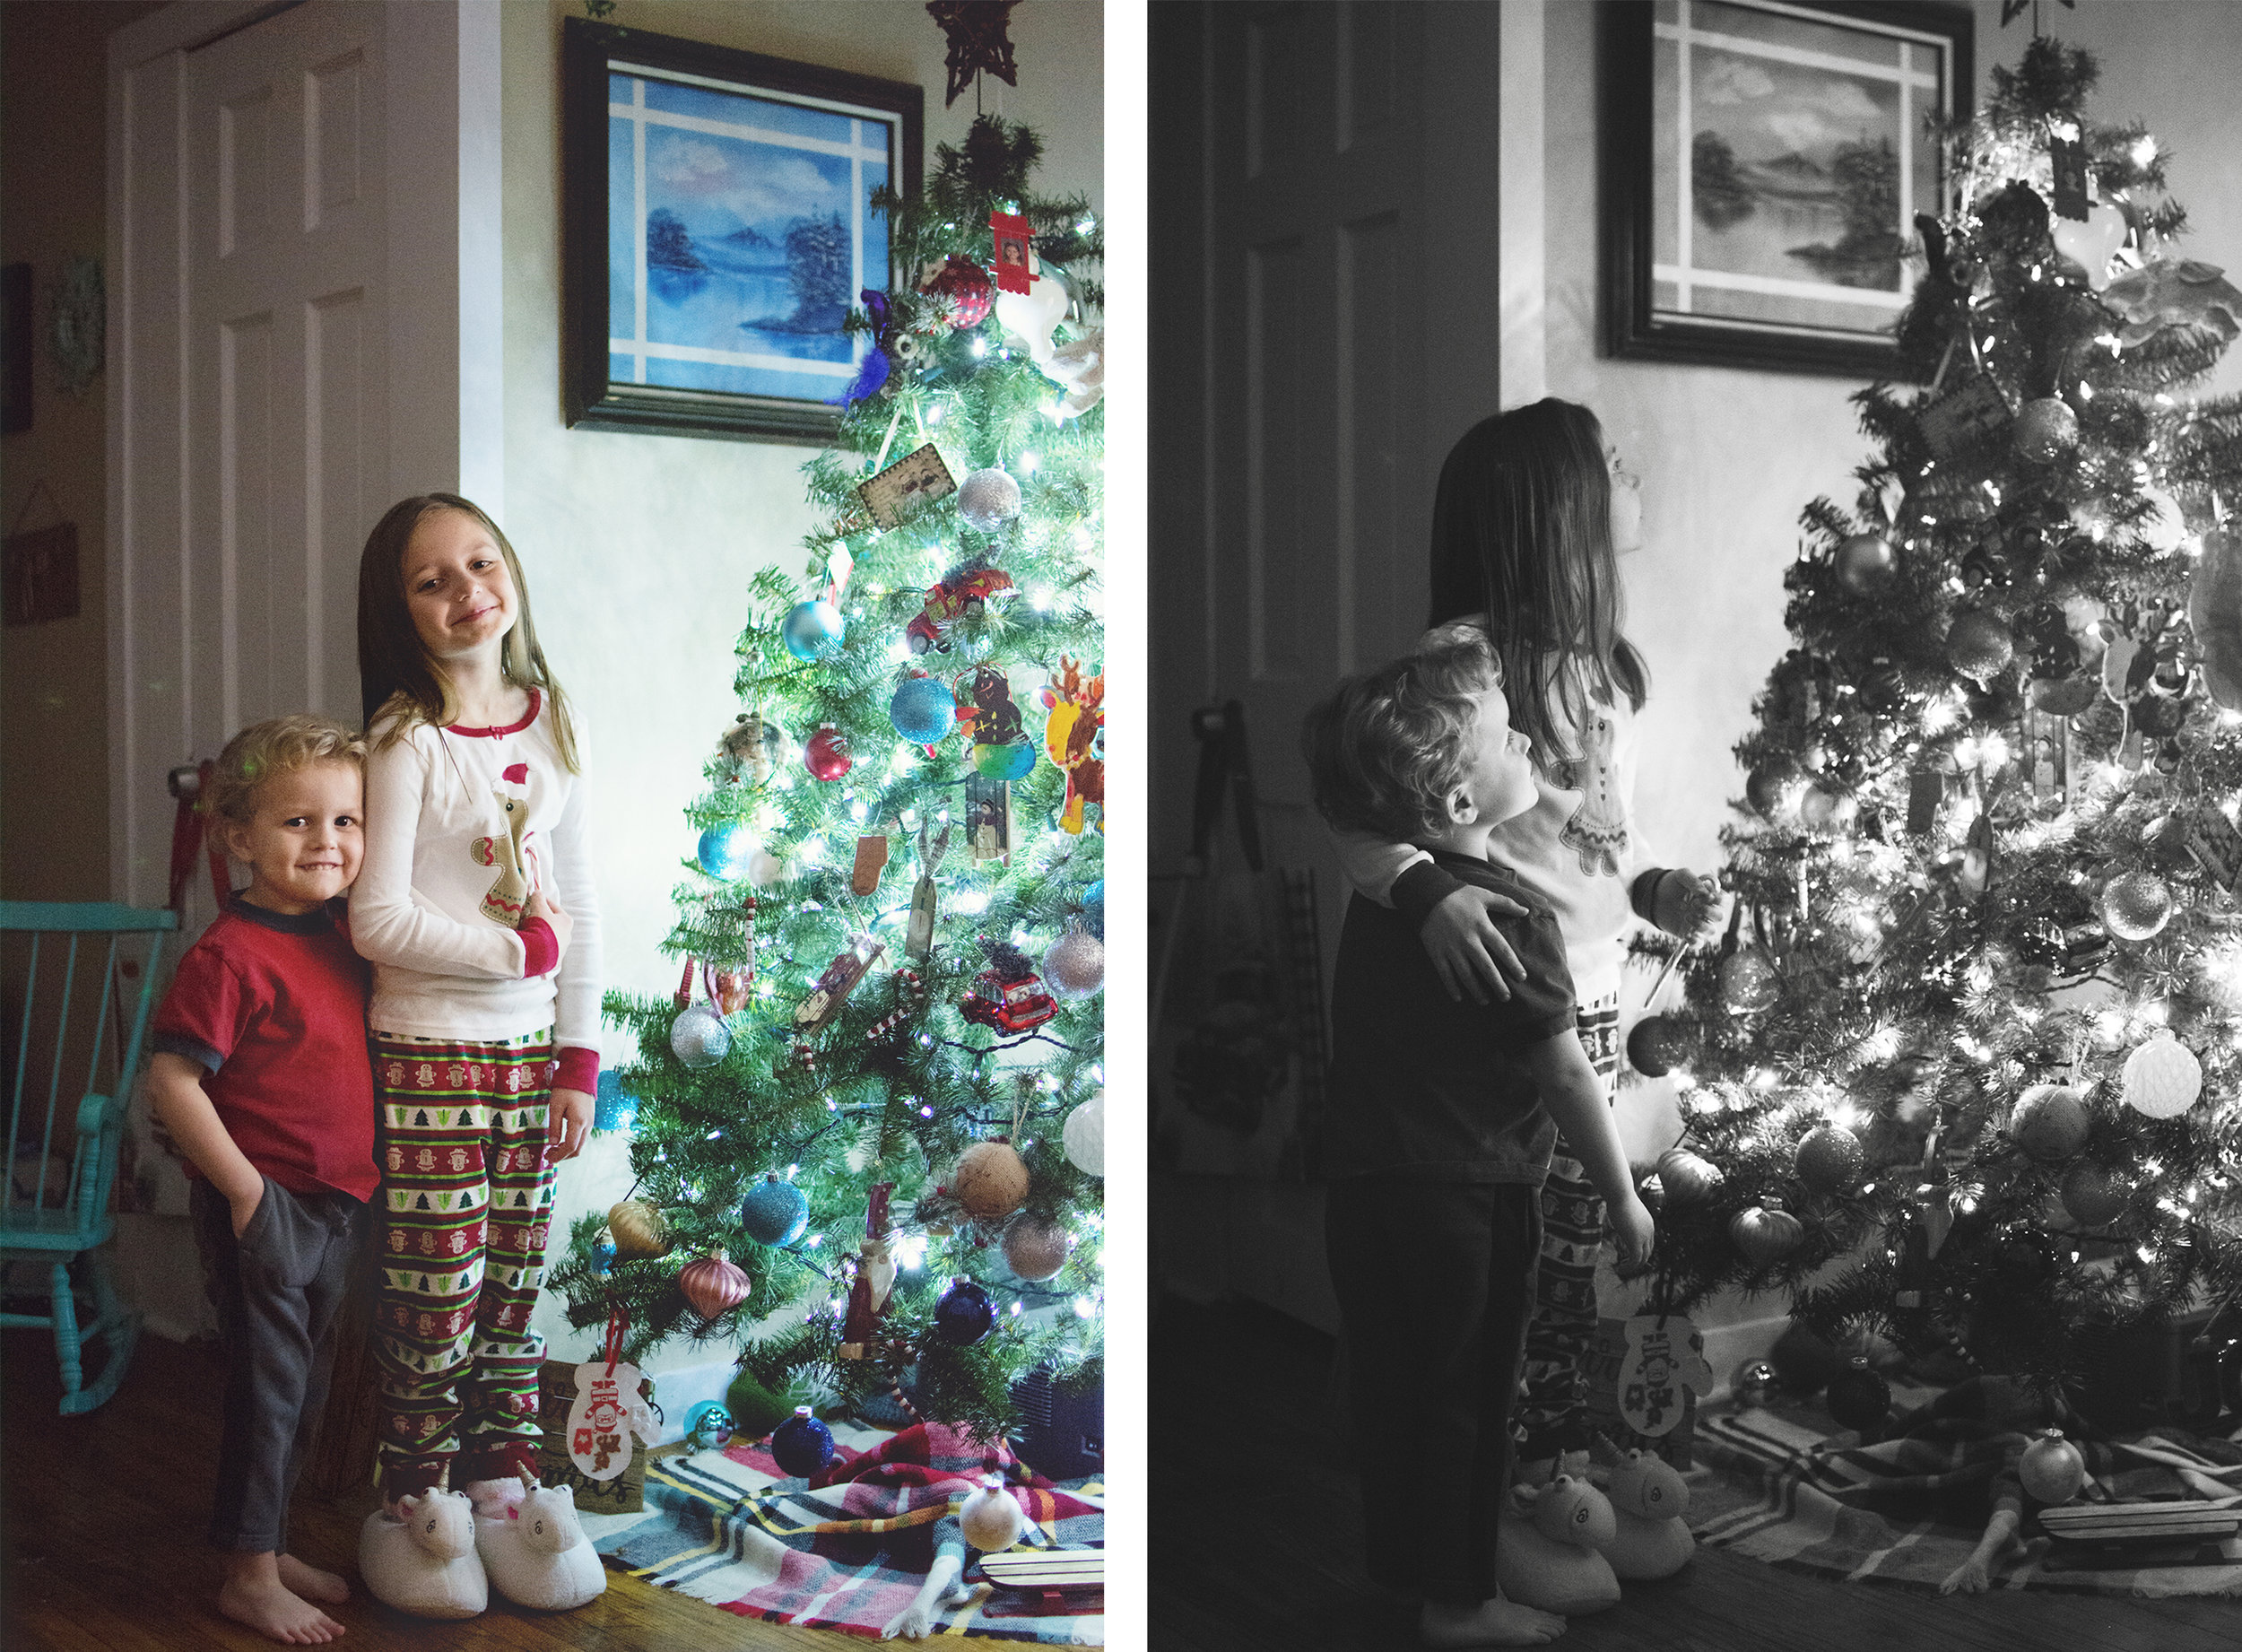 photos of kids in front of christmas tree.jpg